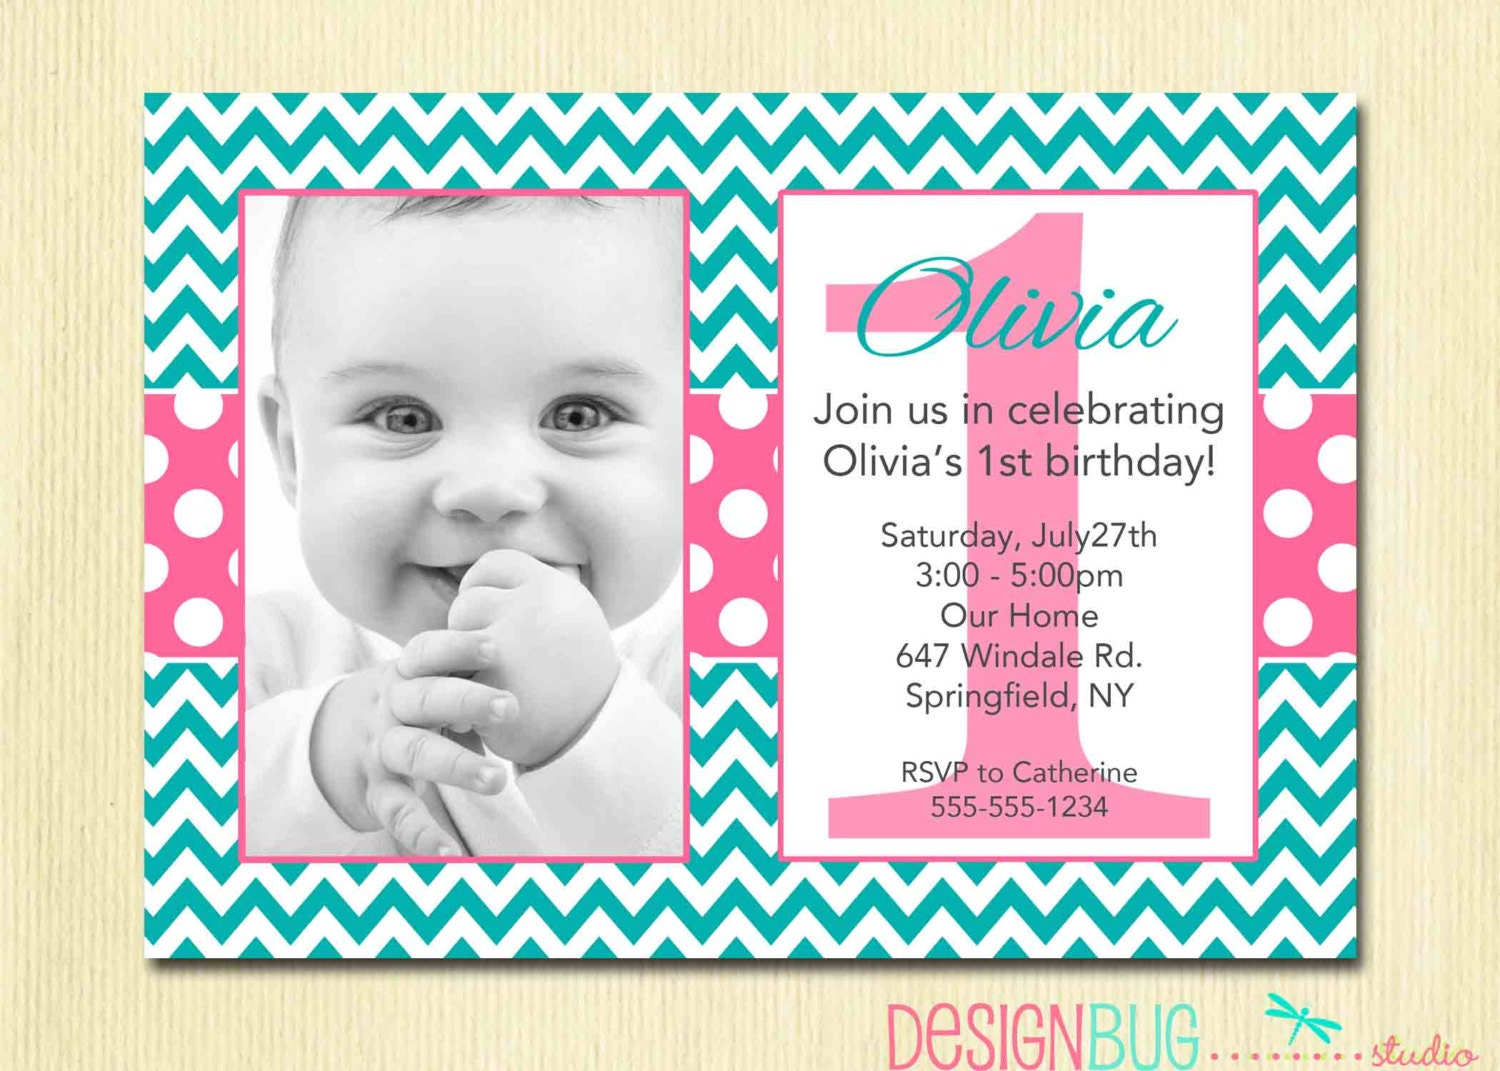 Chevron and Polka Dots Girls Birthday Invitation 1 2 – 3 Year Old Birthday Invitation